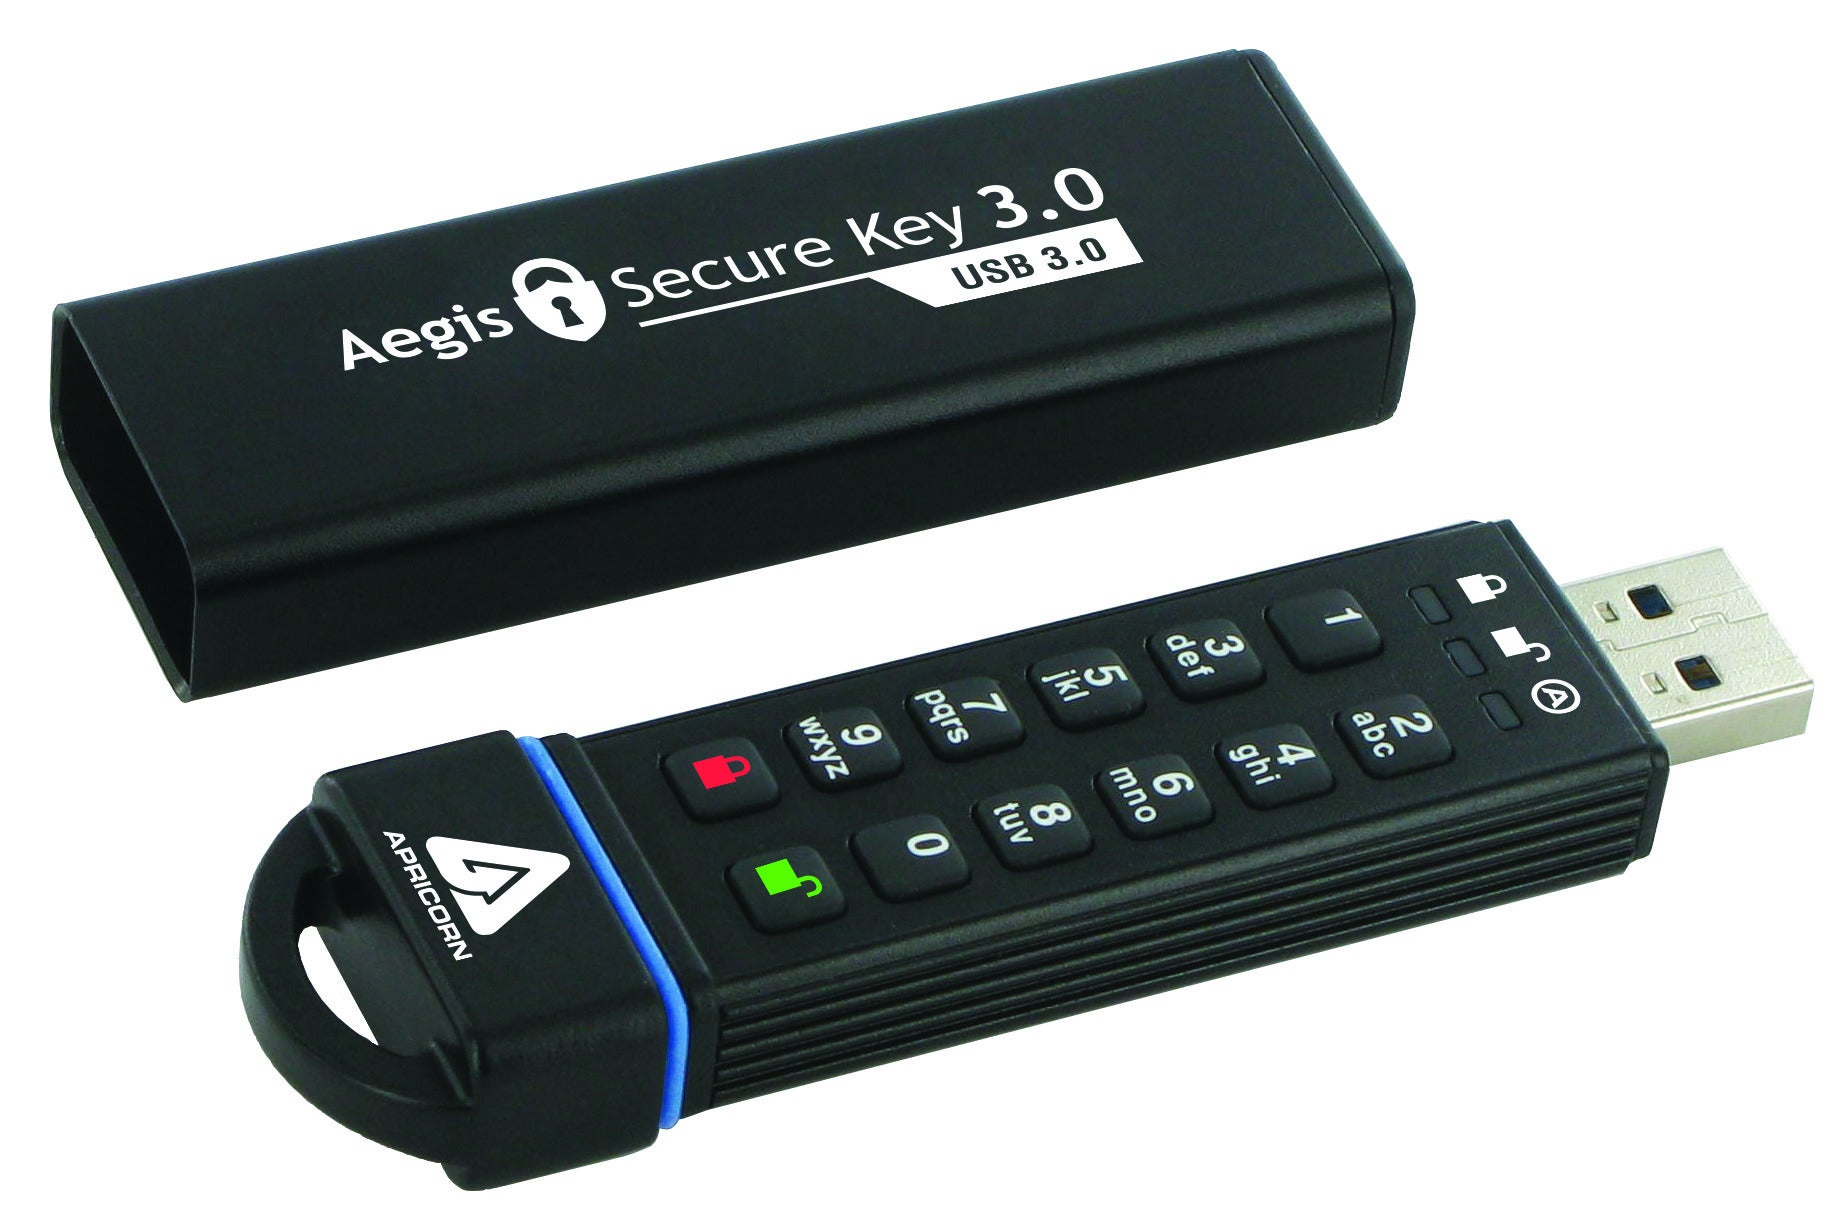 Portable Storage For The Paranoid We Test Two Secure Usb Drives On Flasdisk Kingston 4gb Keypad Vs Software Security Pcworld